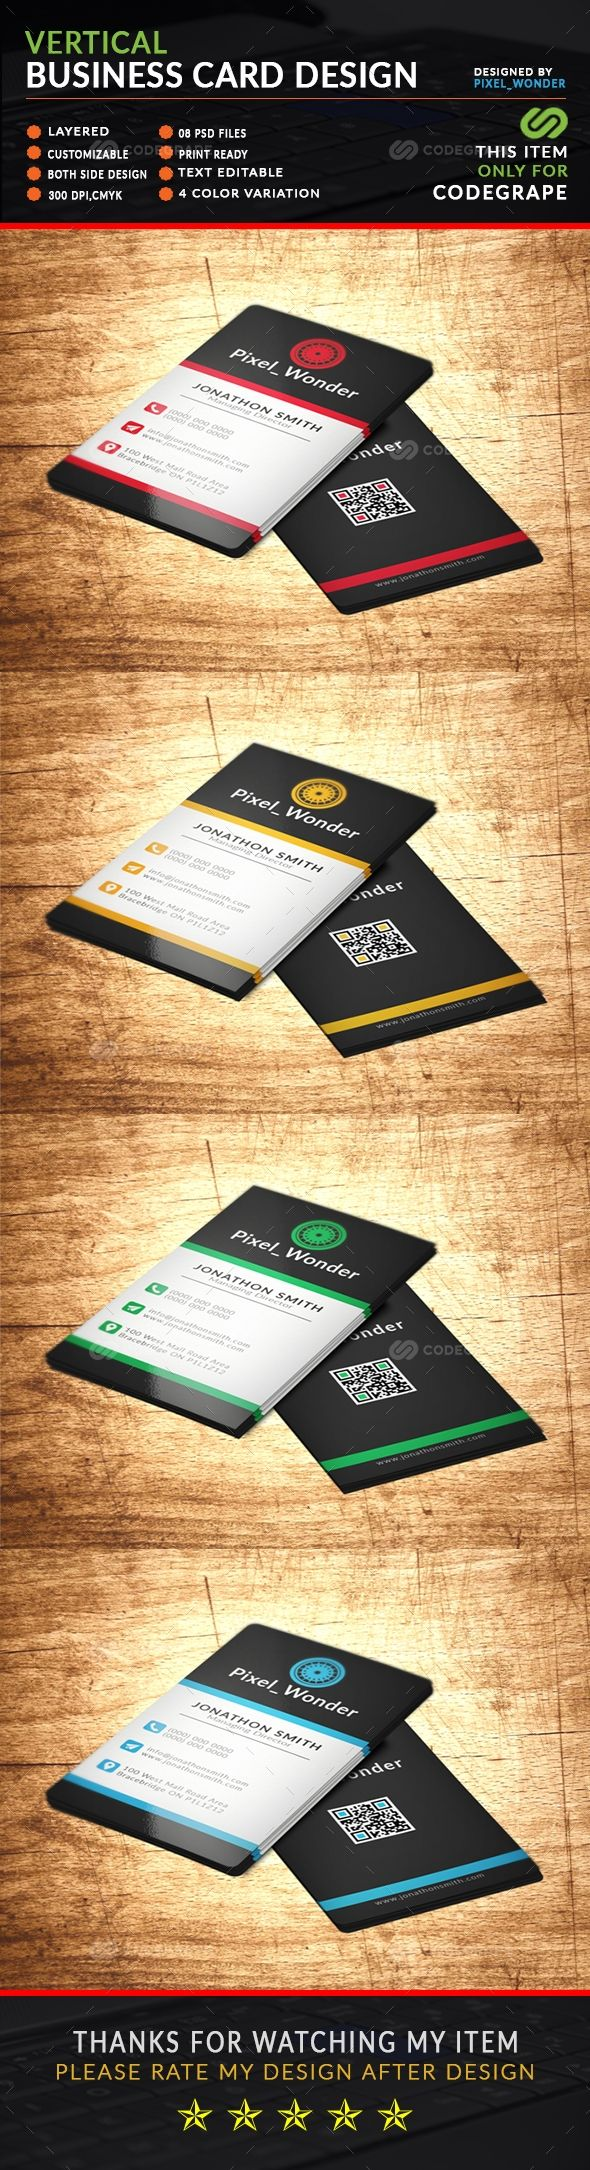 Sametime Business Card Photo Connections Images - Card Design And ...